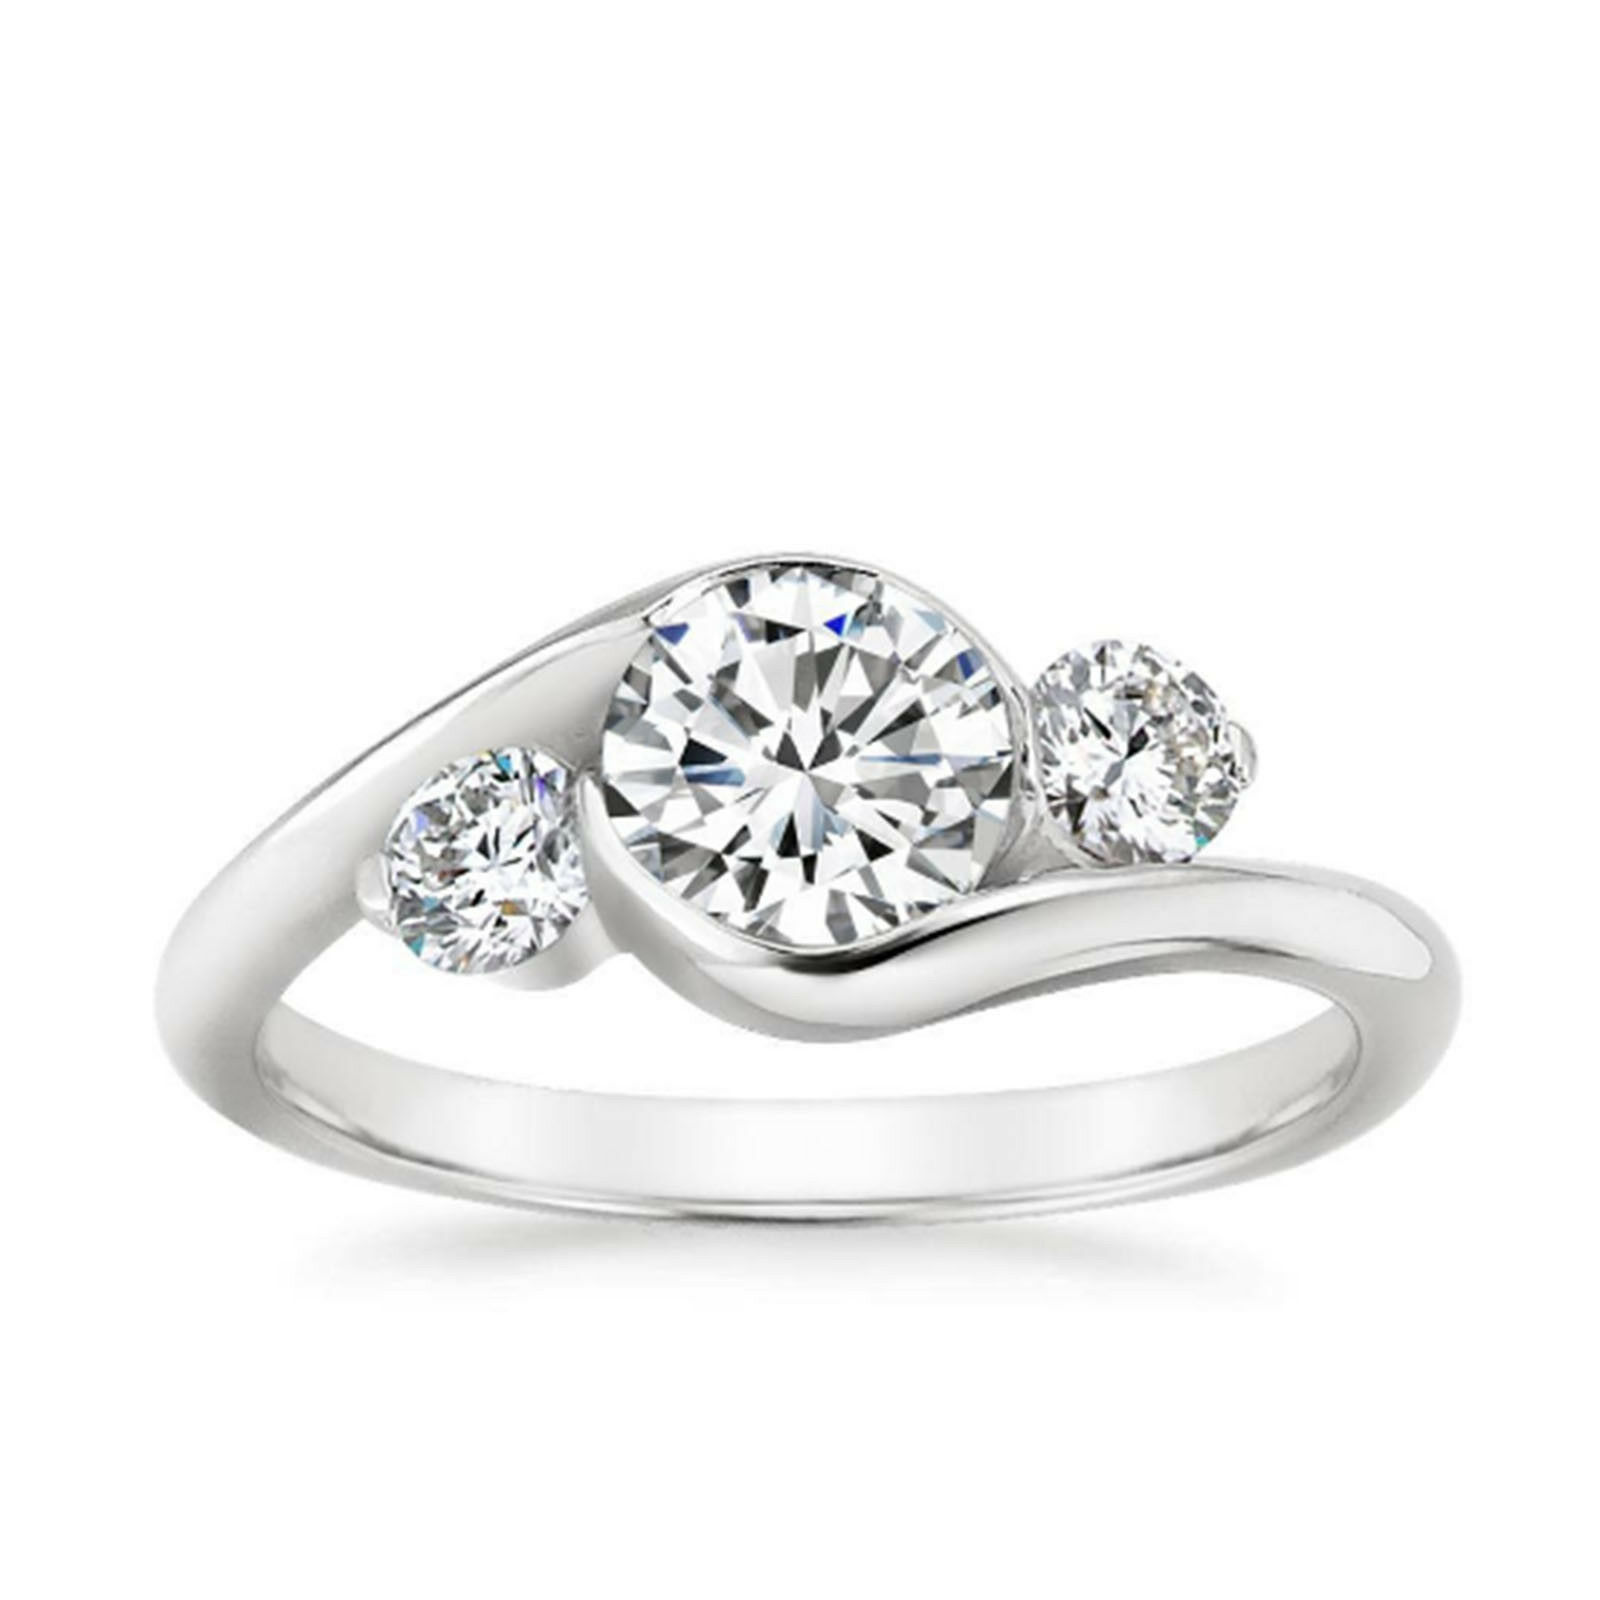 0.80 Ct Round Real Diamond Ring 14K White gold Engagement Ring Size 5 6 7 8 Sale